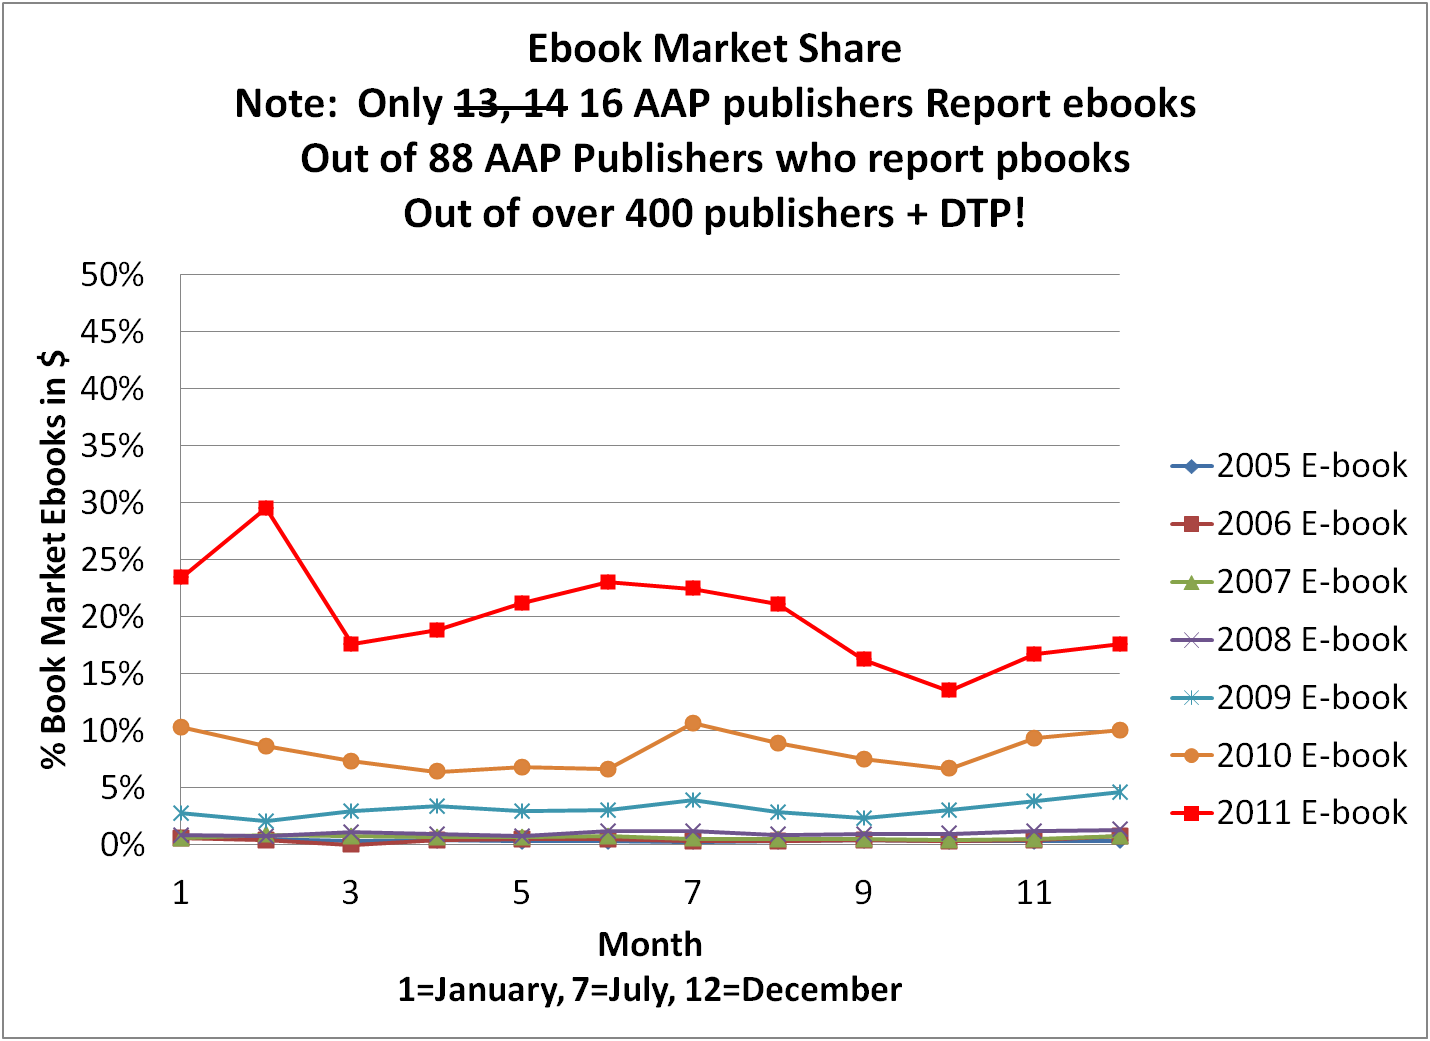 E book comments 2011 ebook sales summary e book growth on a year over year basis to help show the growth since this is aap data could it be that theyve priced their ebooks above the volume nvjuhfo Gallery